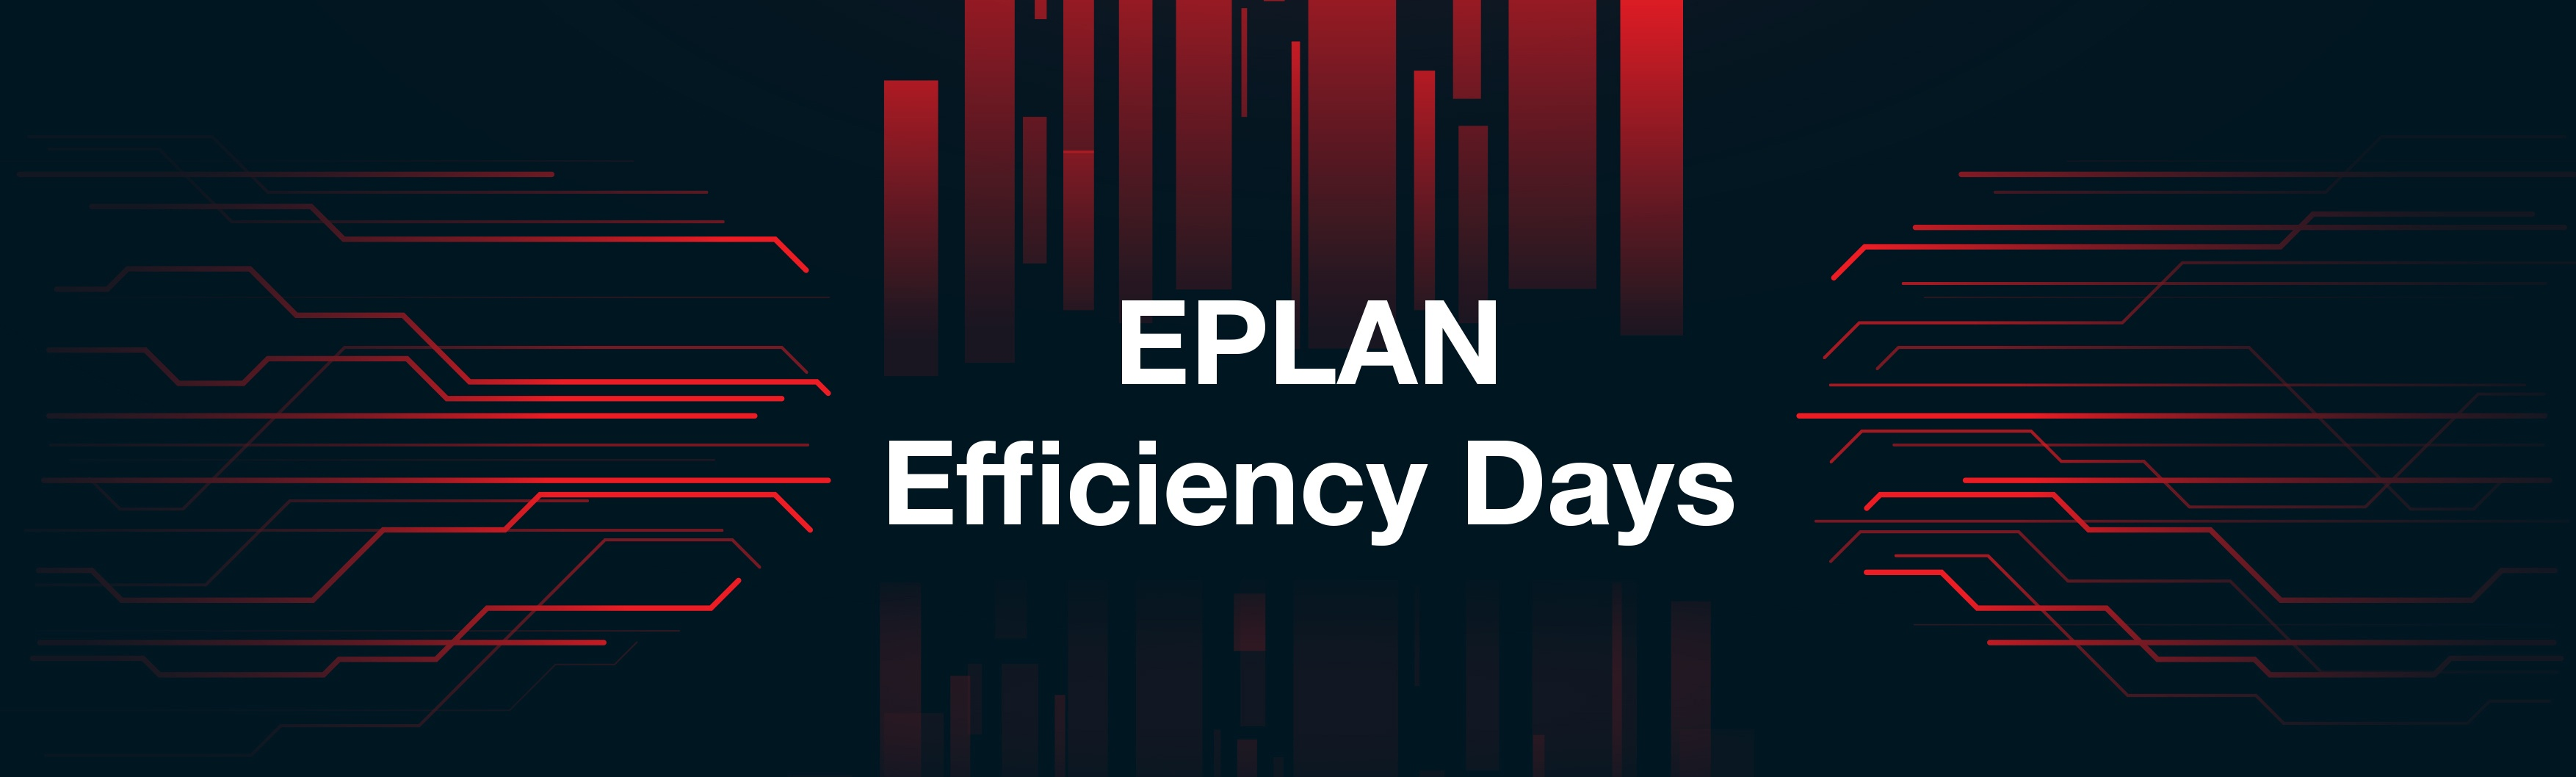 EPLAN Efficiency Days